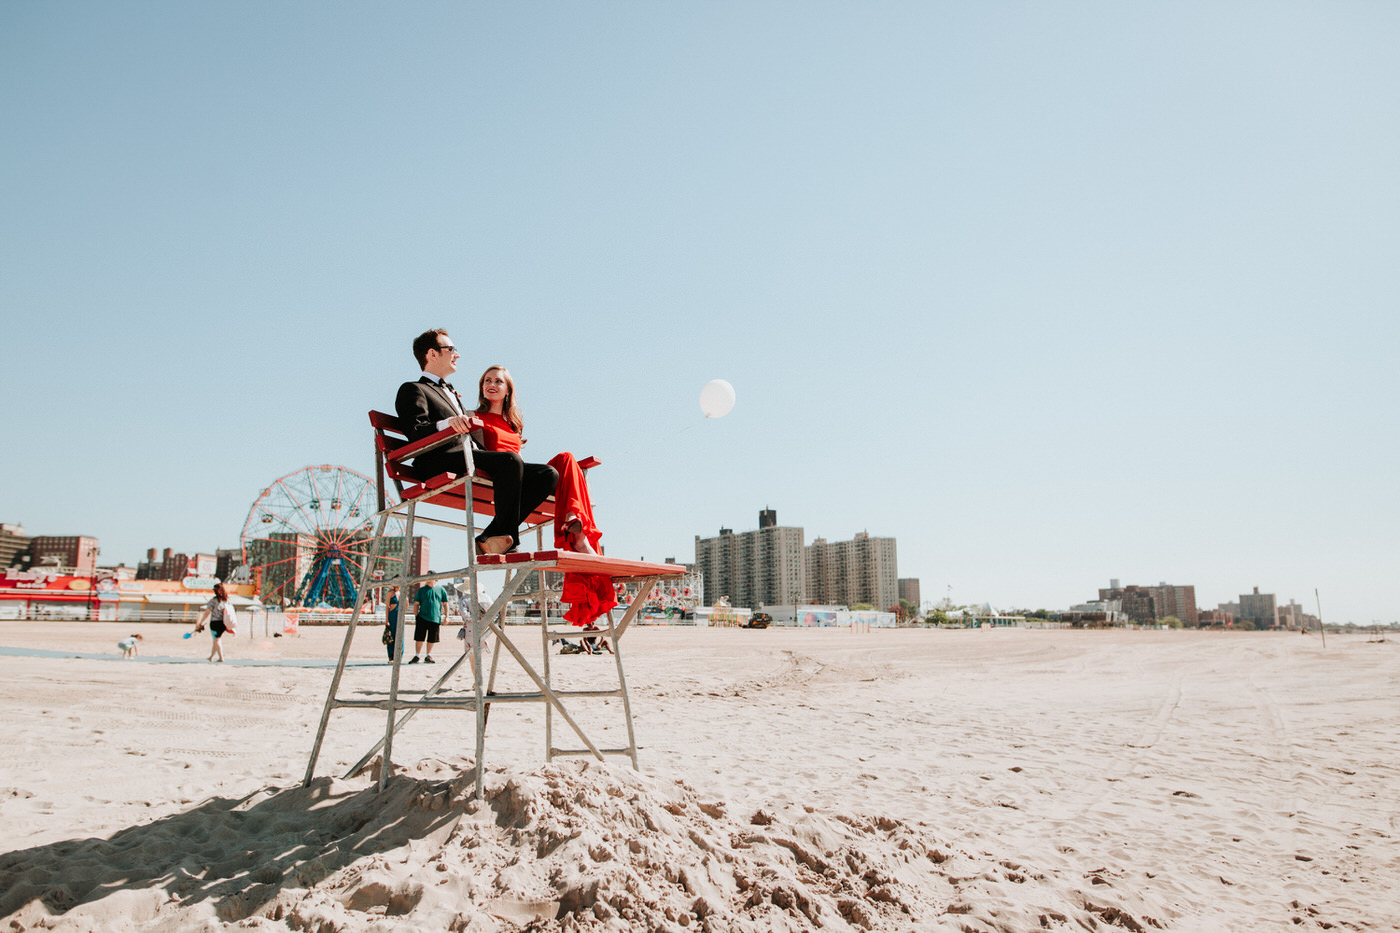 Engaged couple in a Coney Island lifeguard stand on the beach